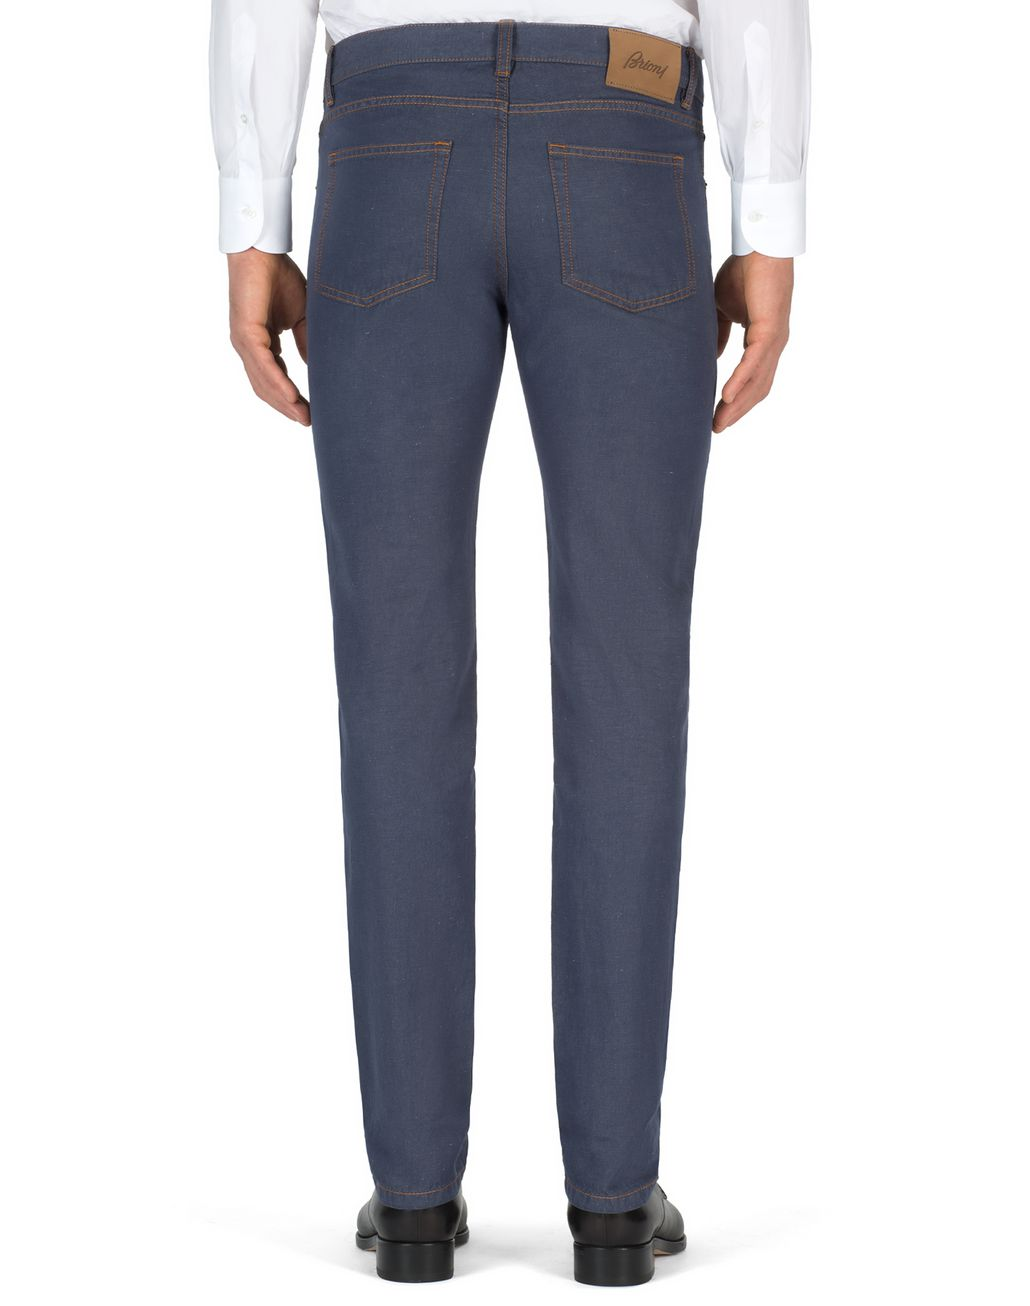 BRIONI Bluette Slim-Fit Cotton and Linen Aneto Jeans  Denim Man d